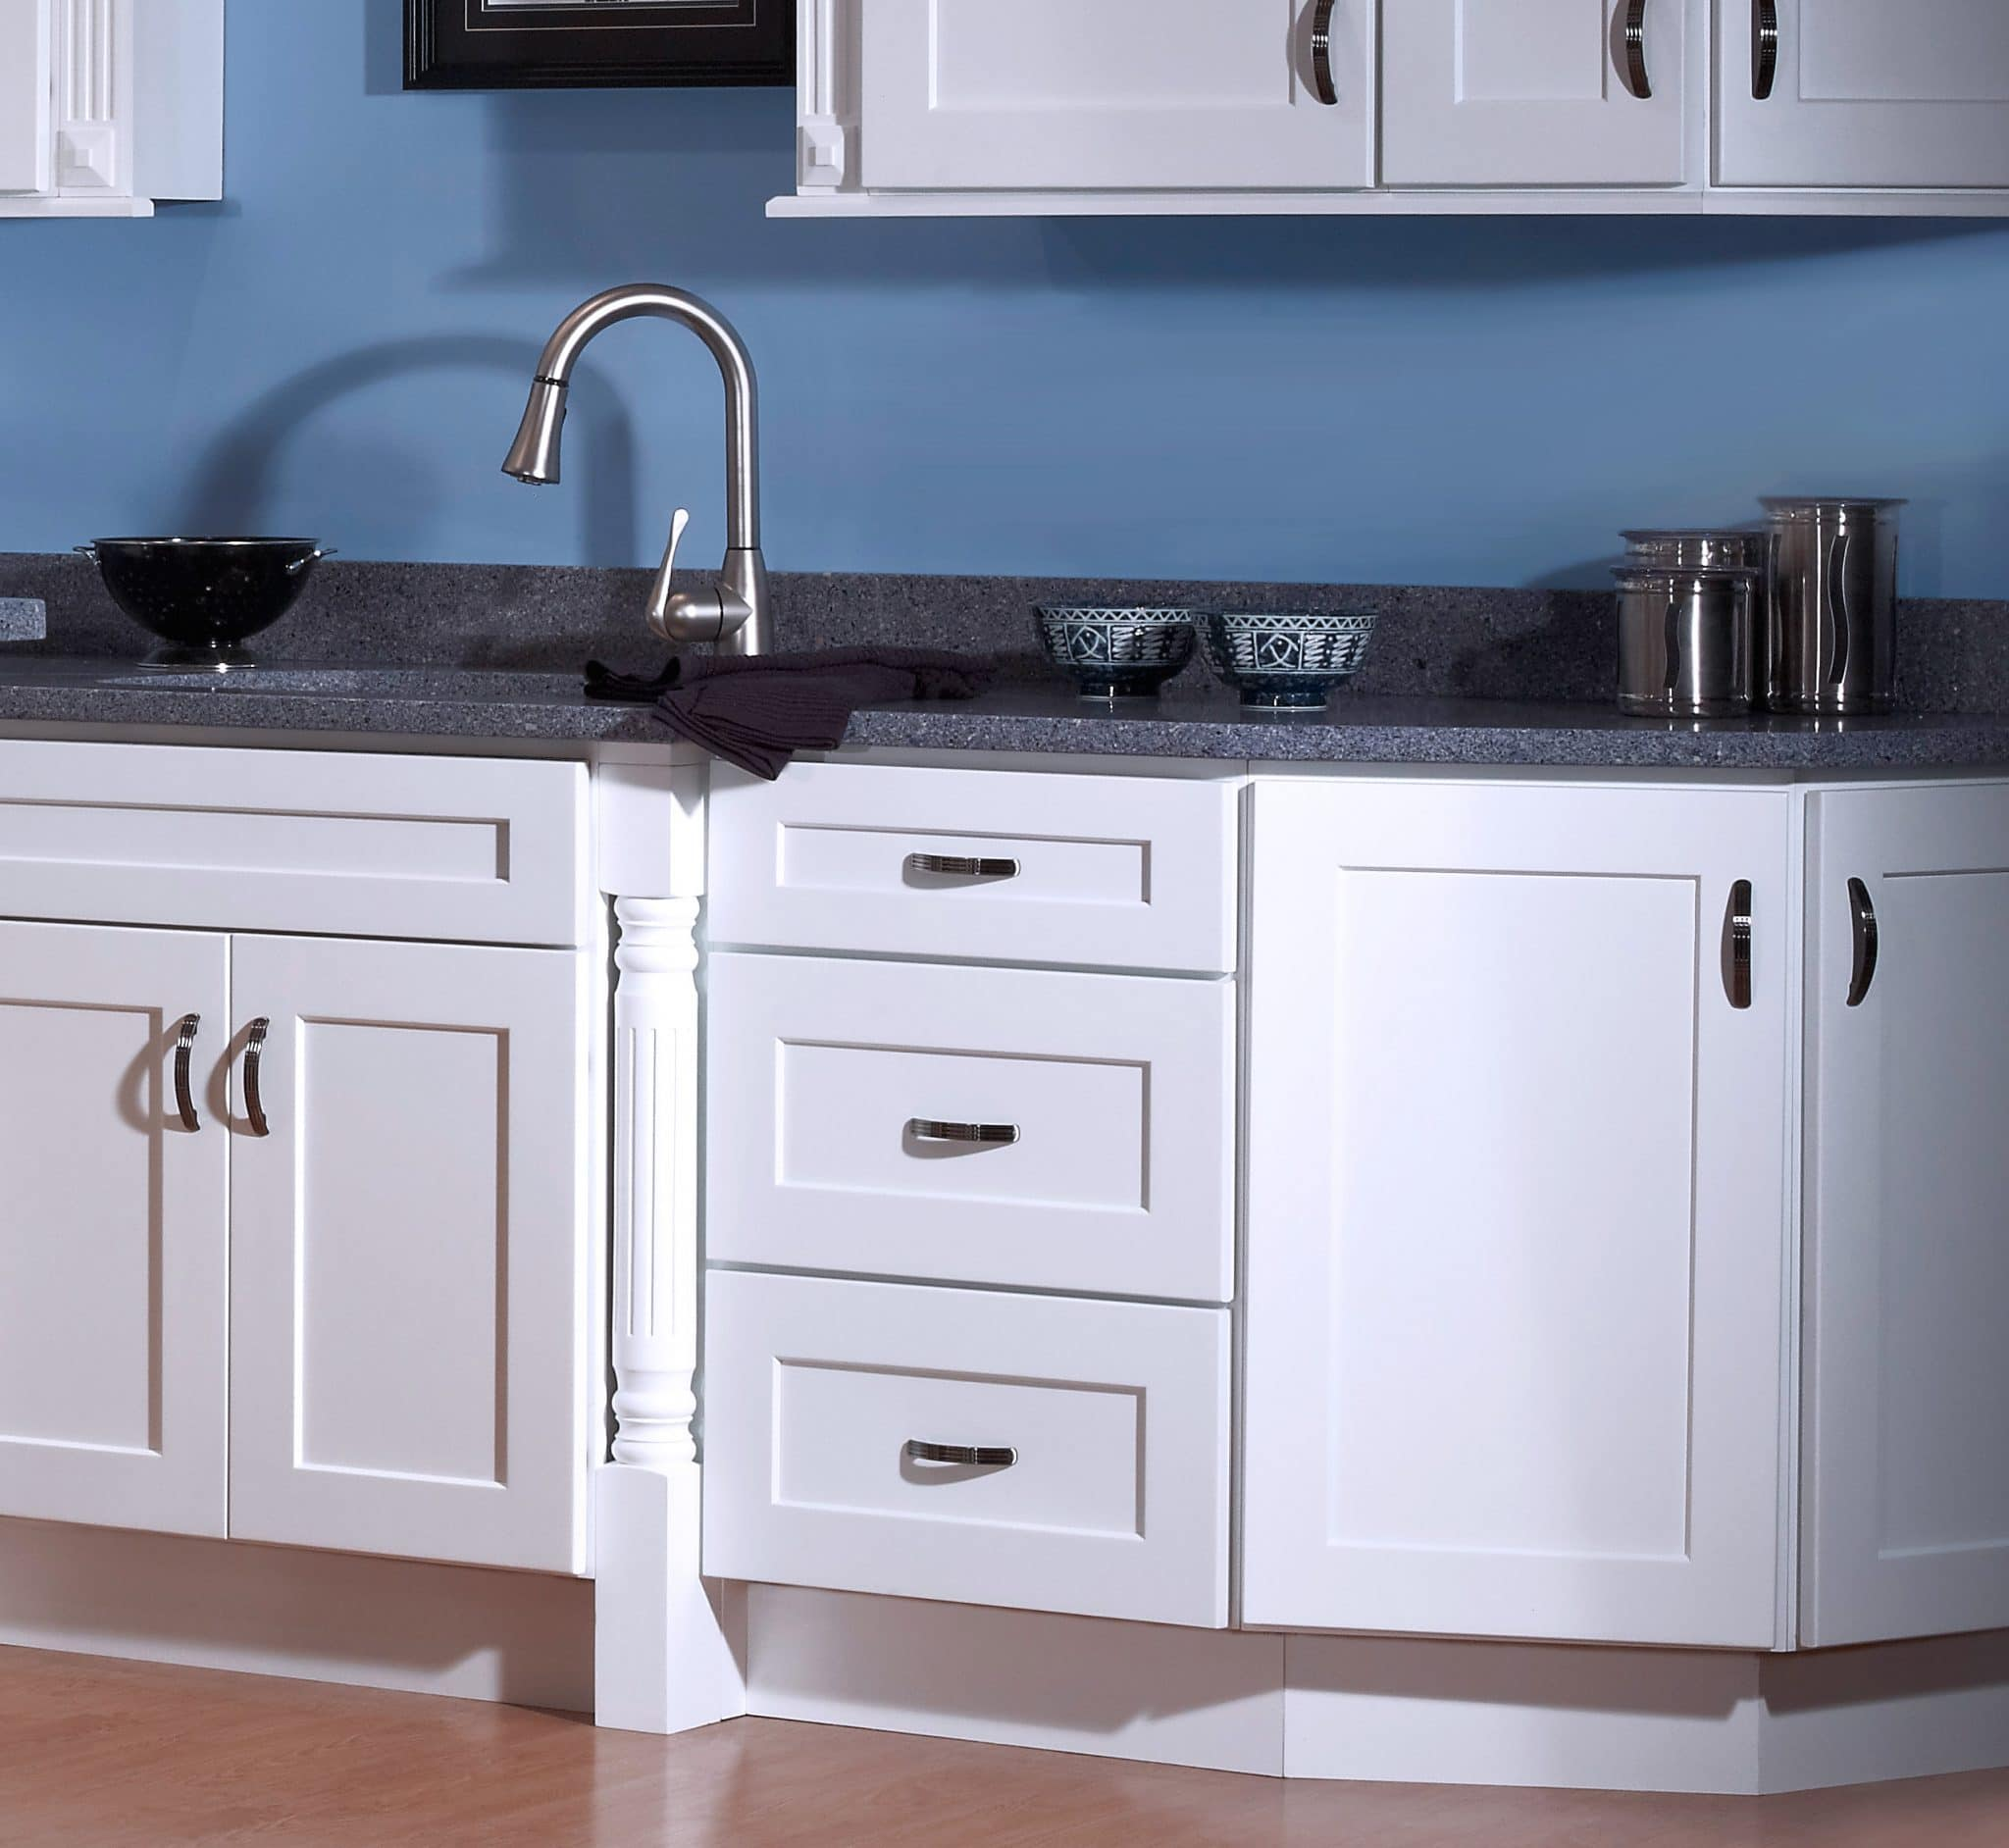 Shaker Cabinet Kitchen: What Is A Shaker Style Kitchen Cabinet?